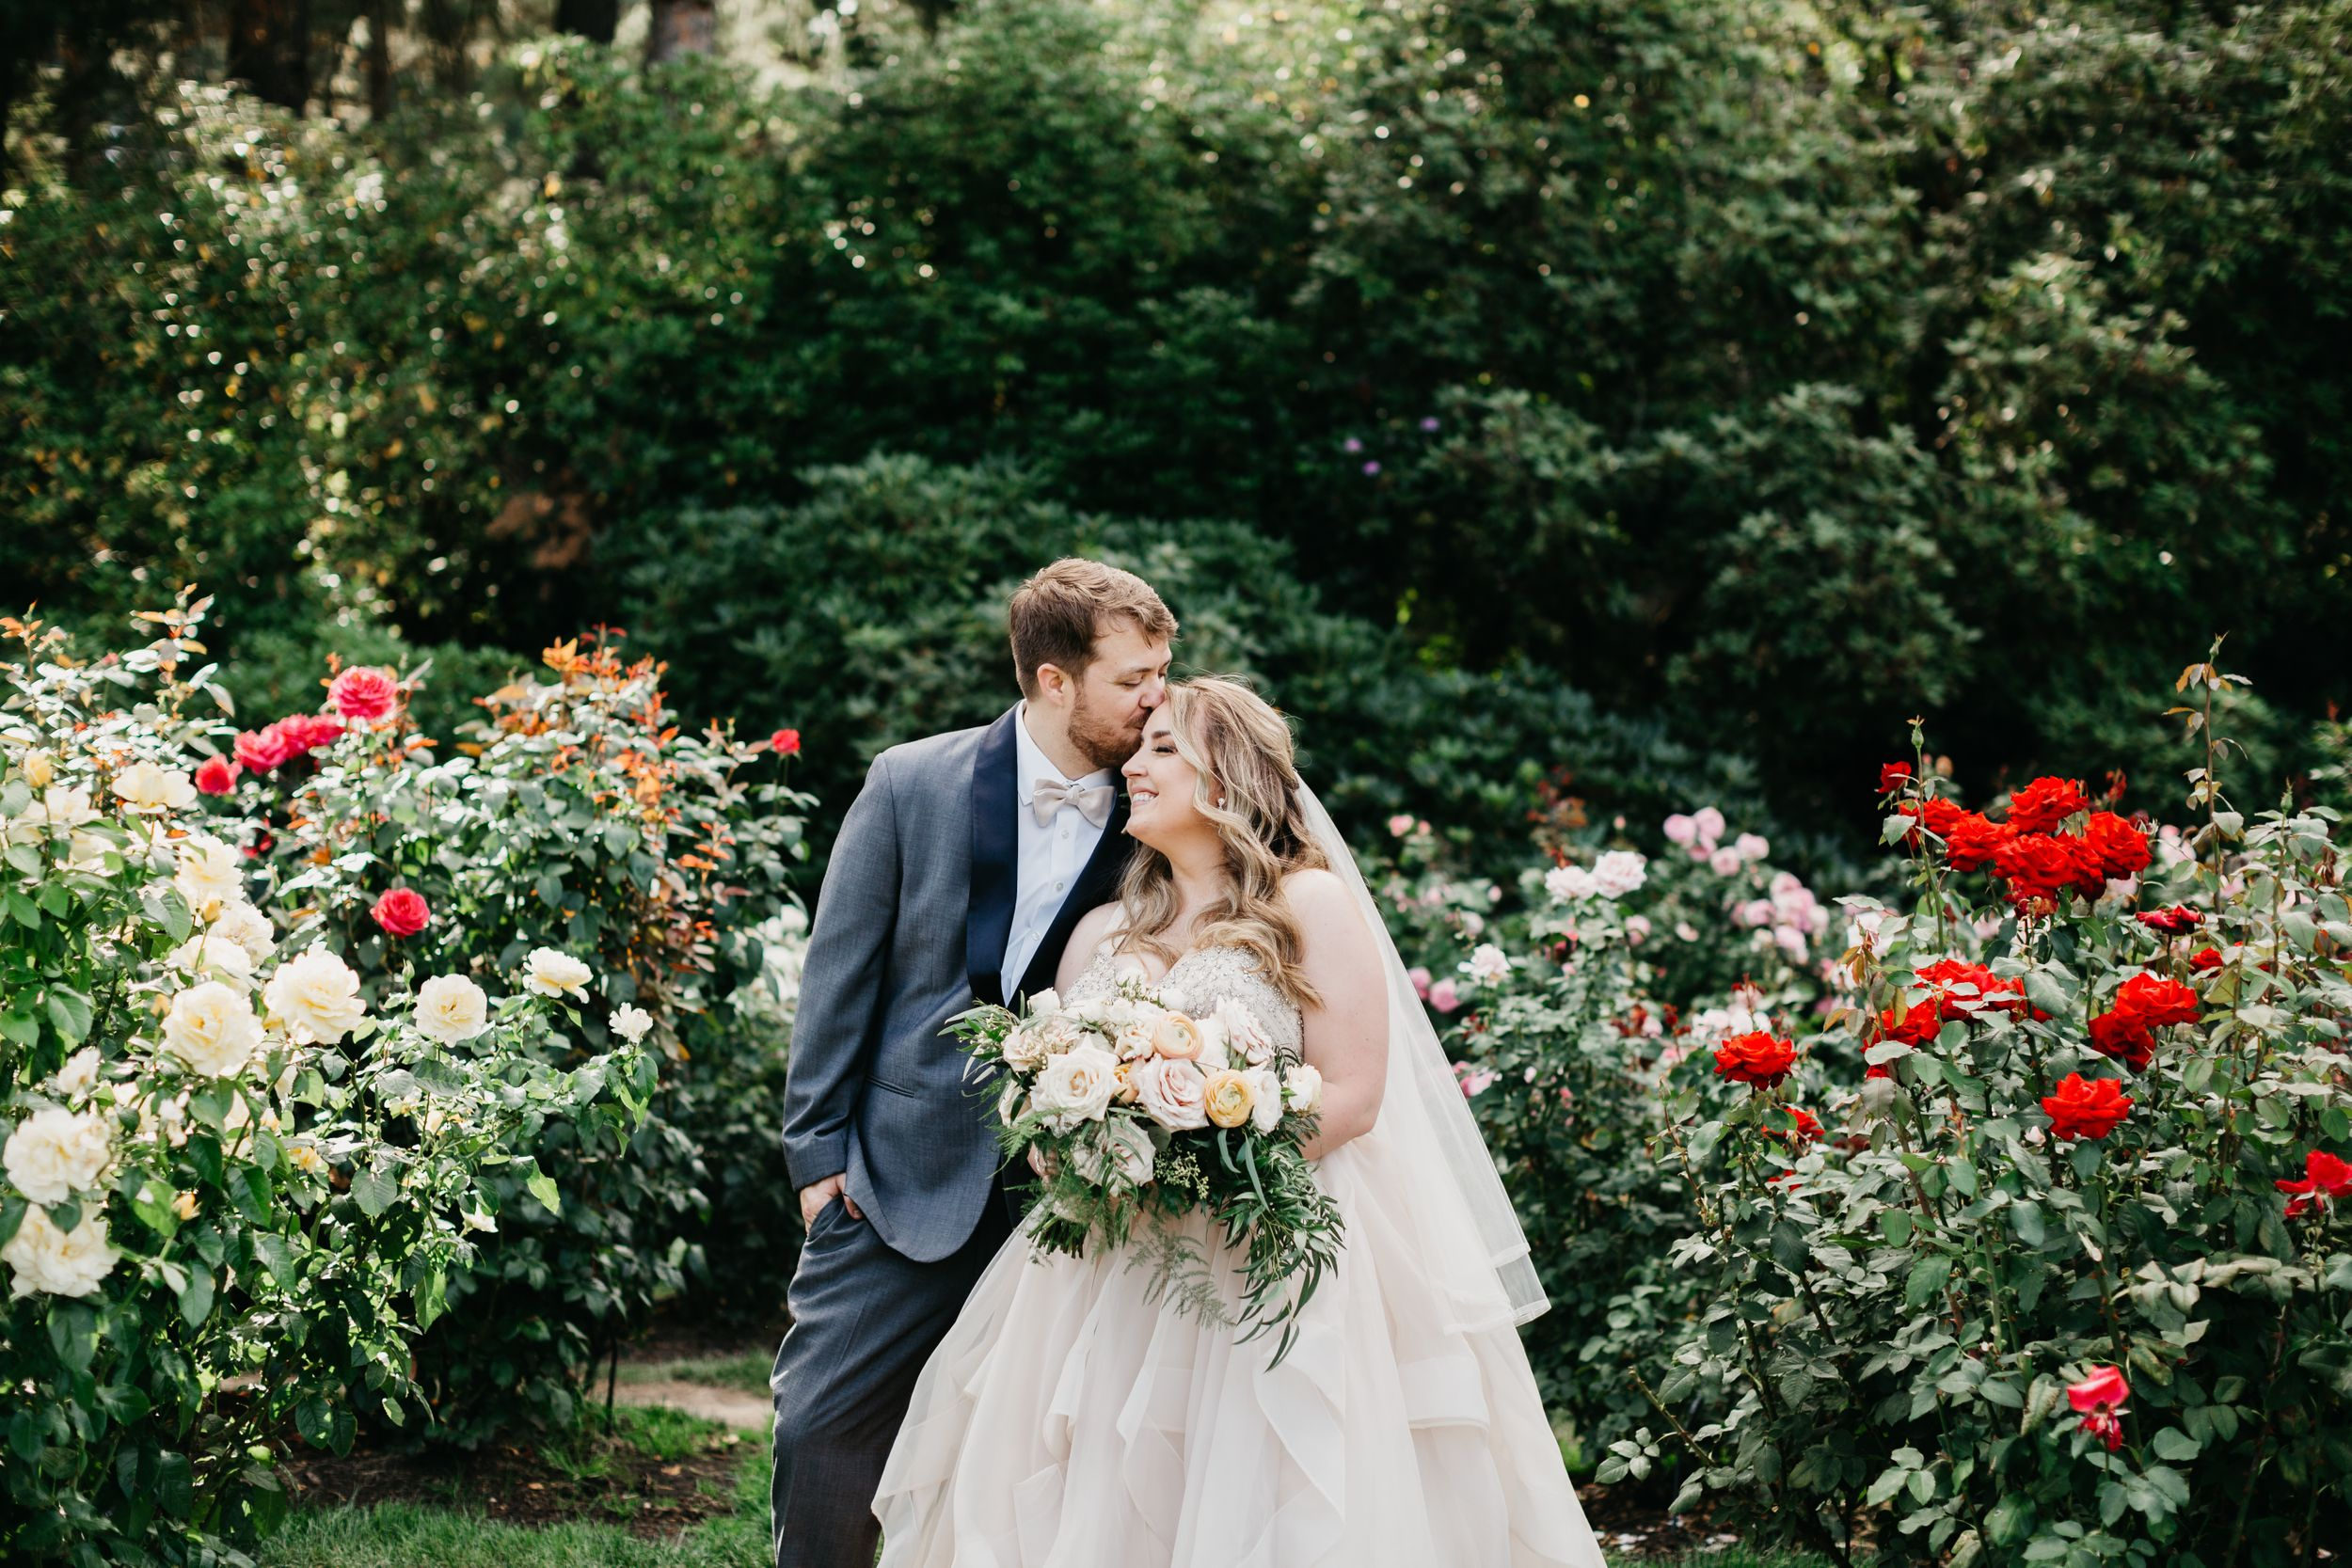 rose test garden wedding, Oregon wedding ideas, Portland wedding, rose garden wedding, Oregon wedding photographer,